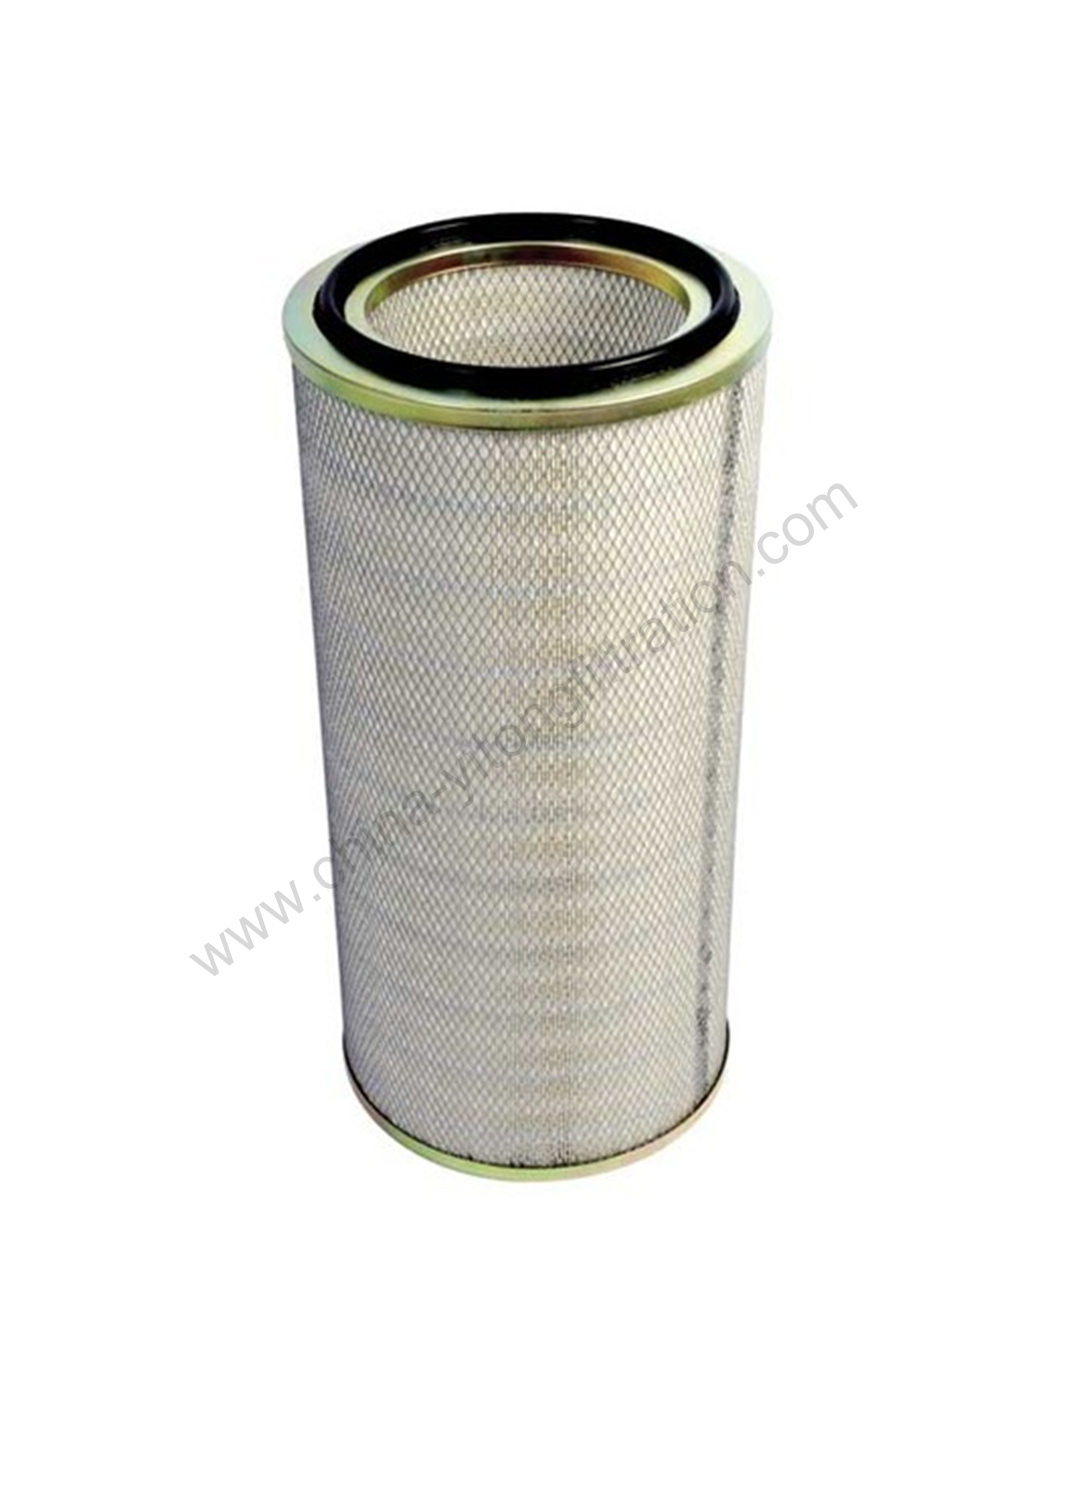 Welded Dust removal Filter Cartridge